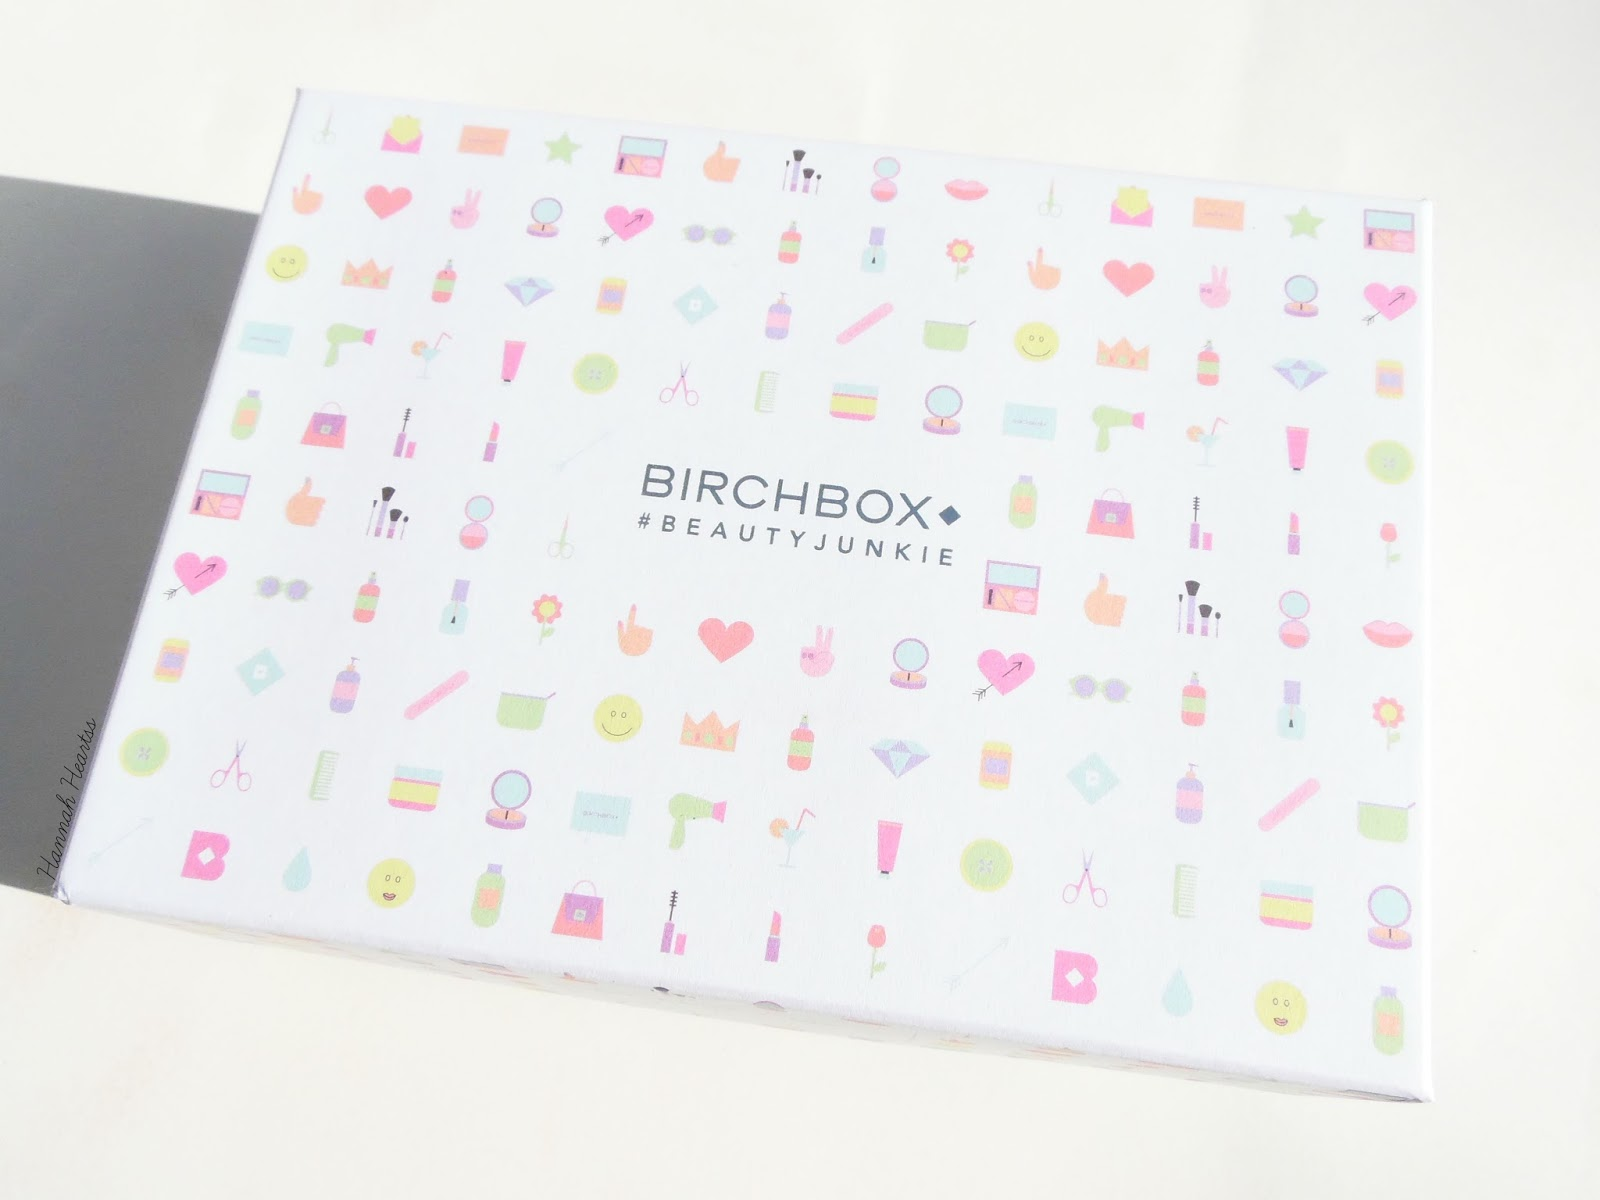 August #BeautyJunkie Birchbox